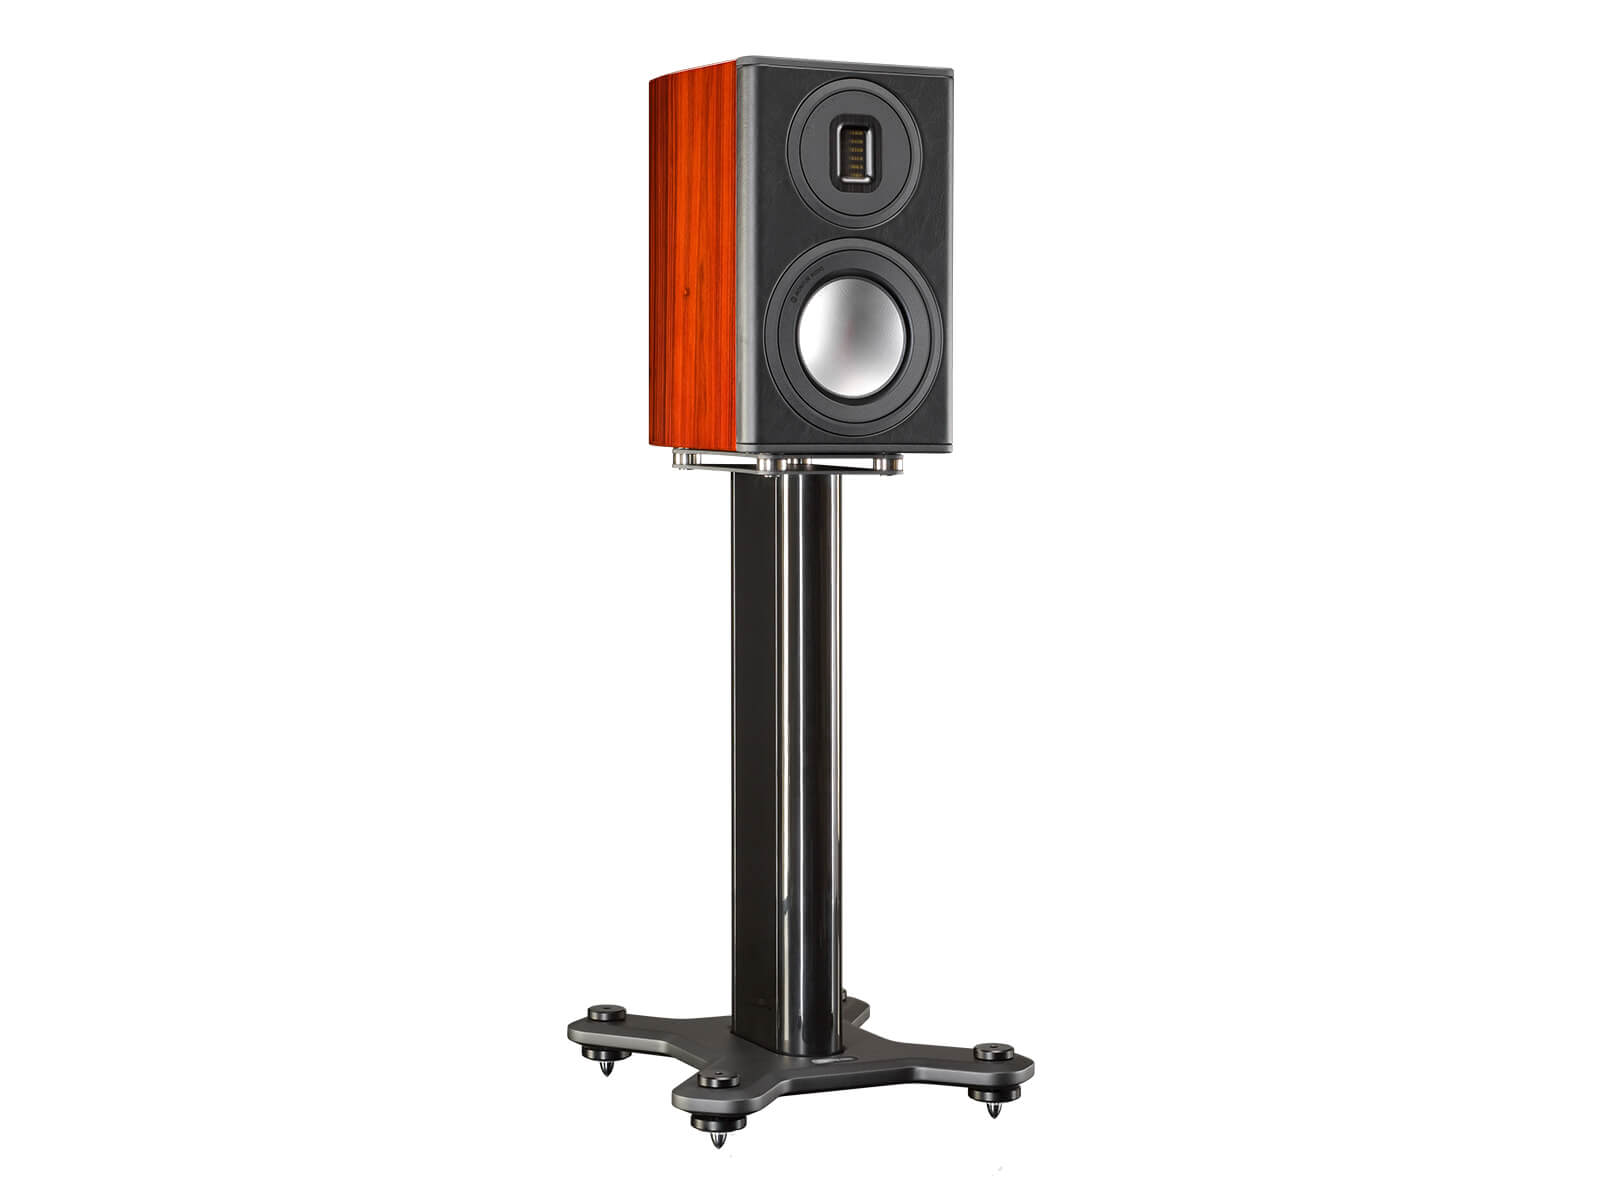 Platinum PL200 II, bookshelf speakers, featuring a grille and a santos rosewood real wood veneer finish.